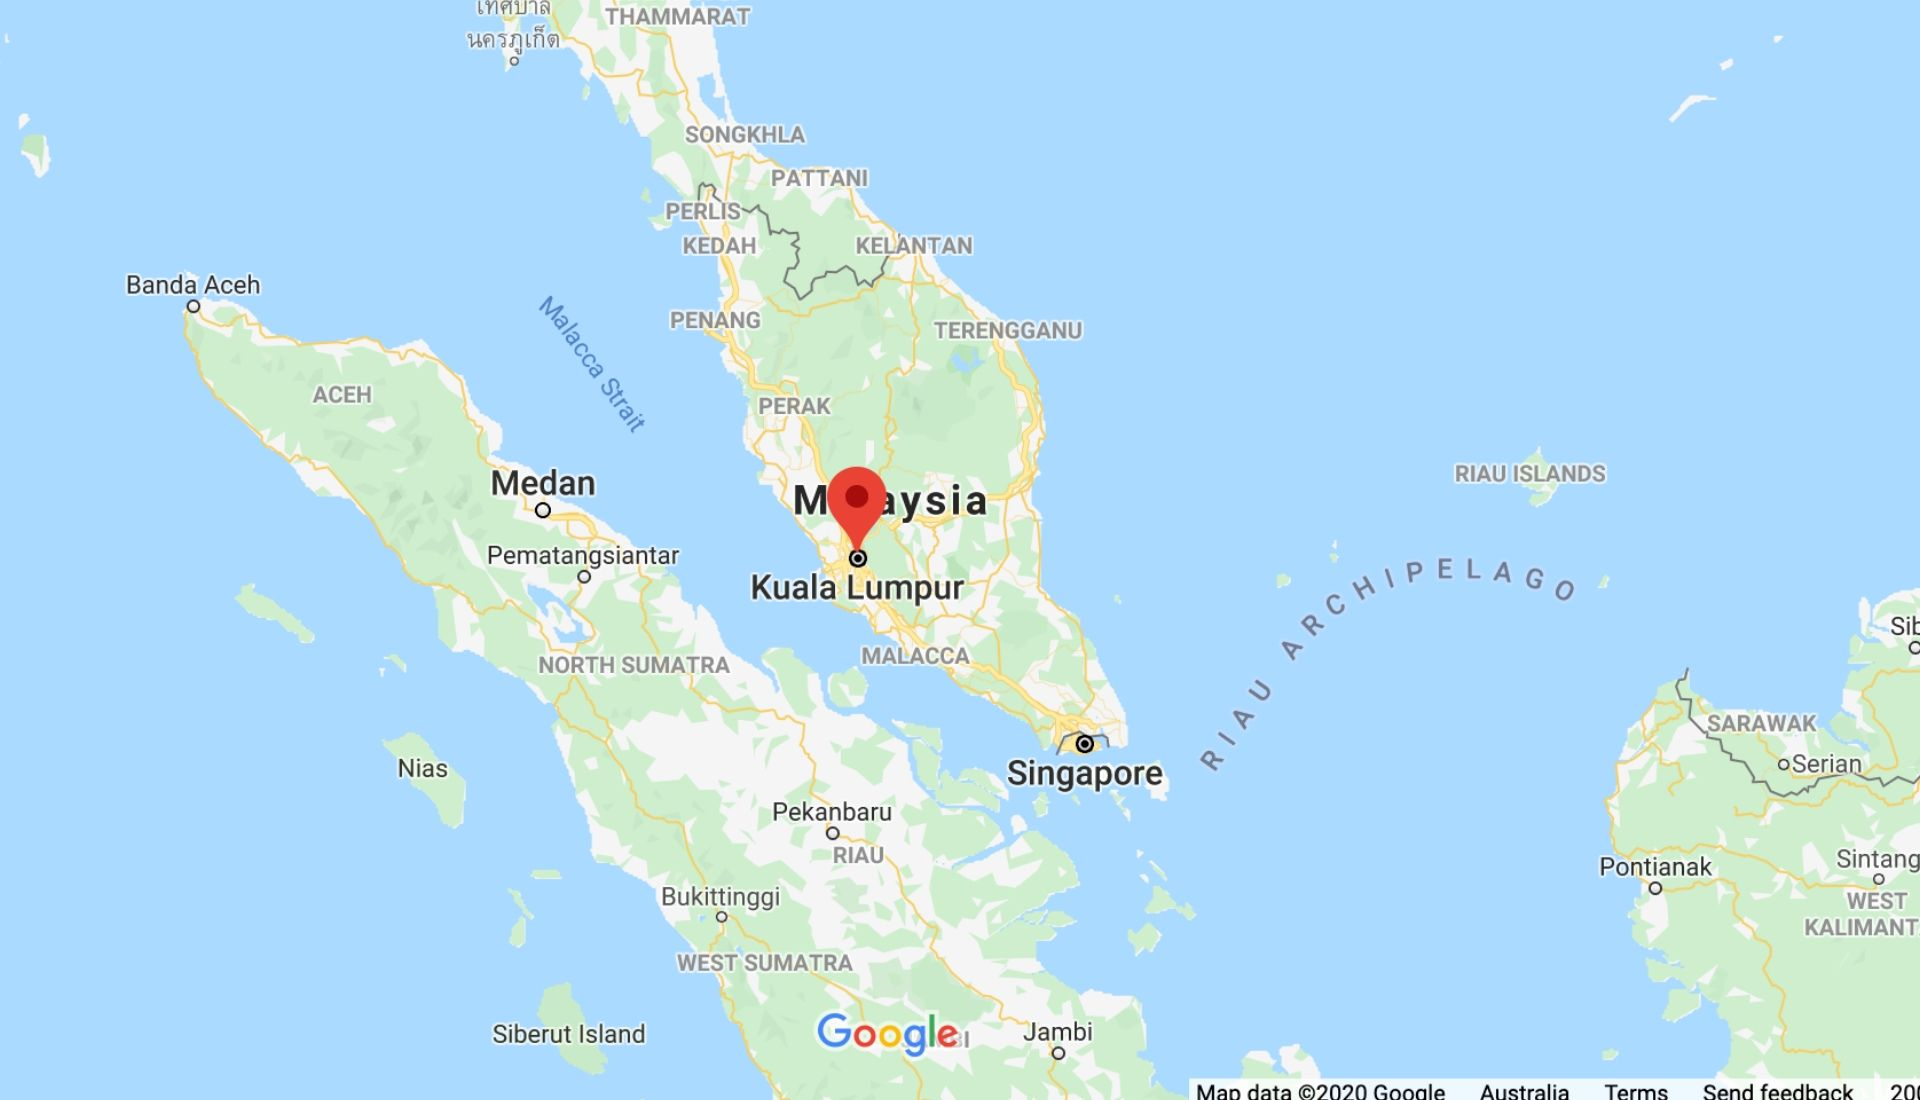 Map of Malaysia in Asia